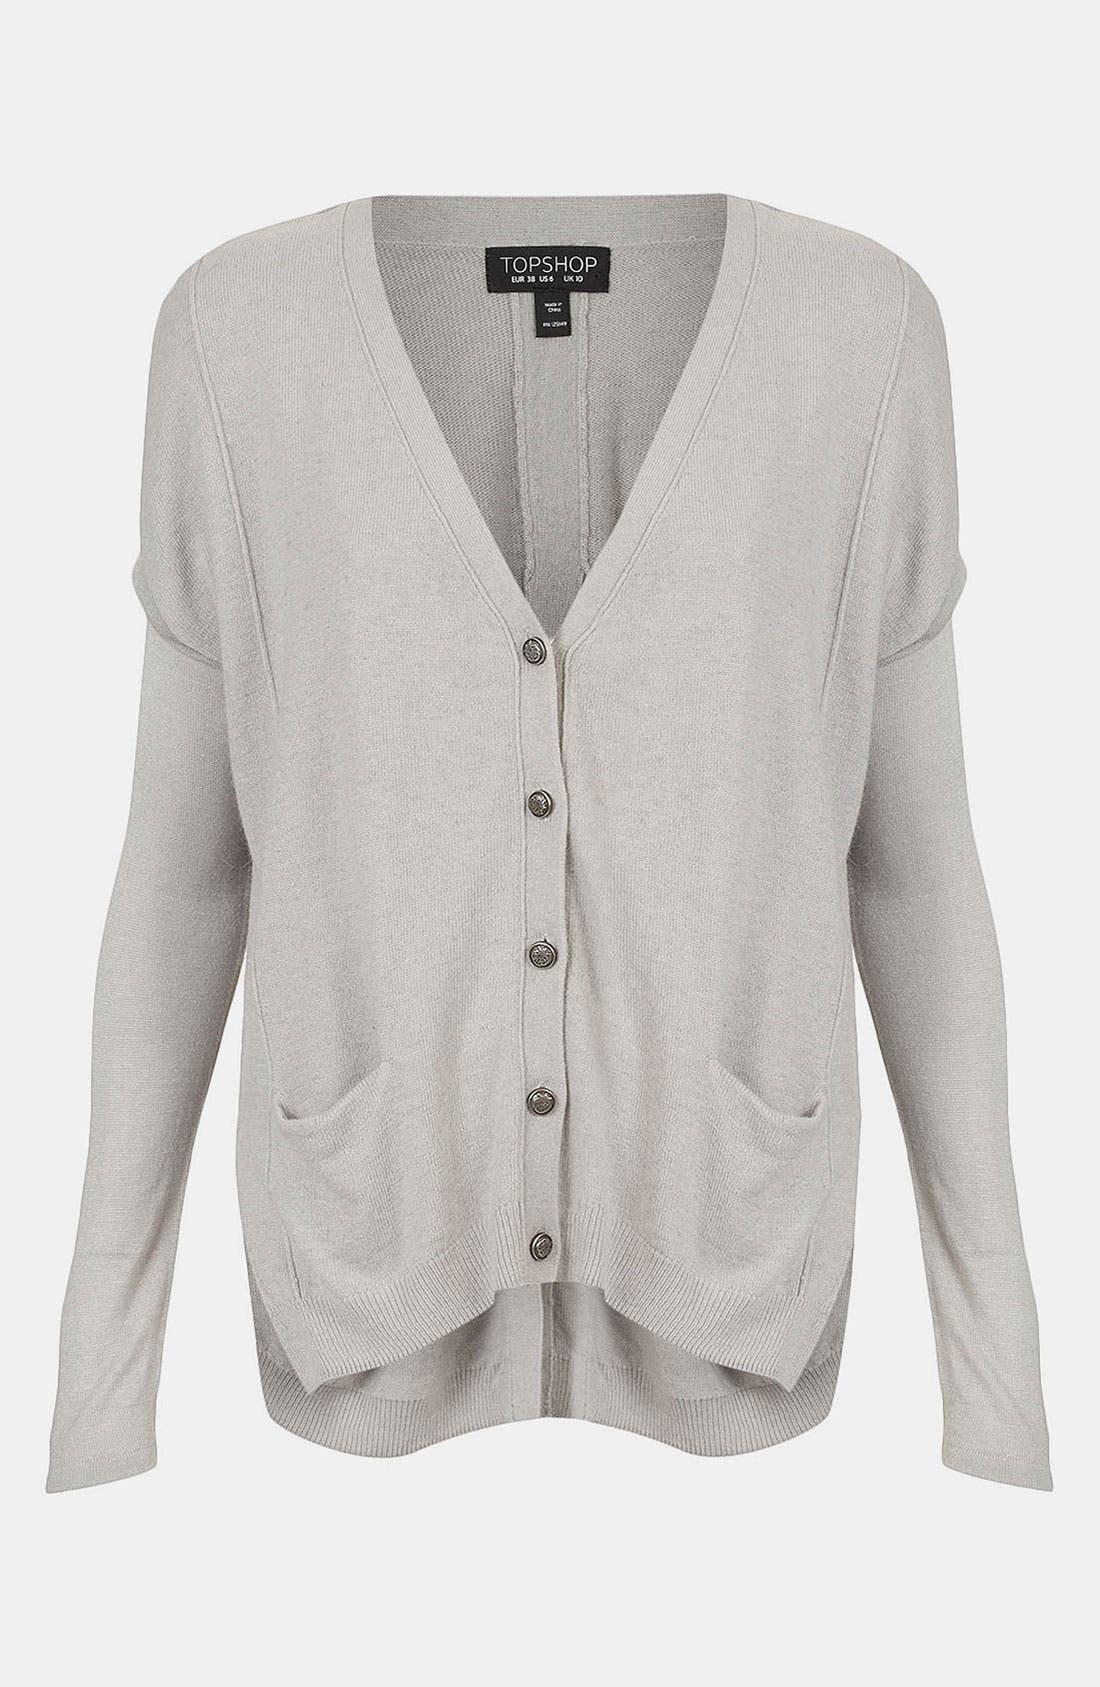 Main Image - Topshop Sheer Sleeve Envelope Back Cardigan